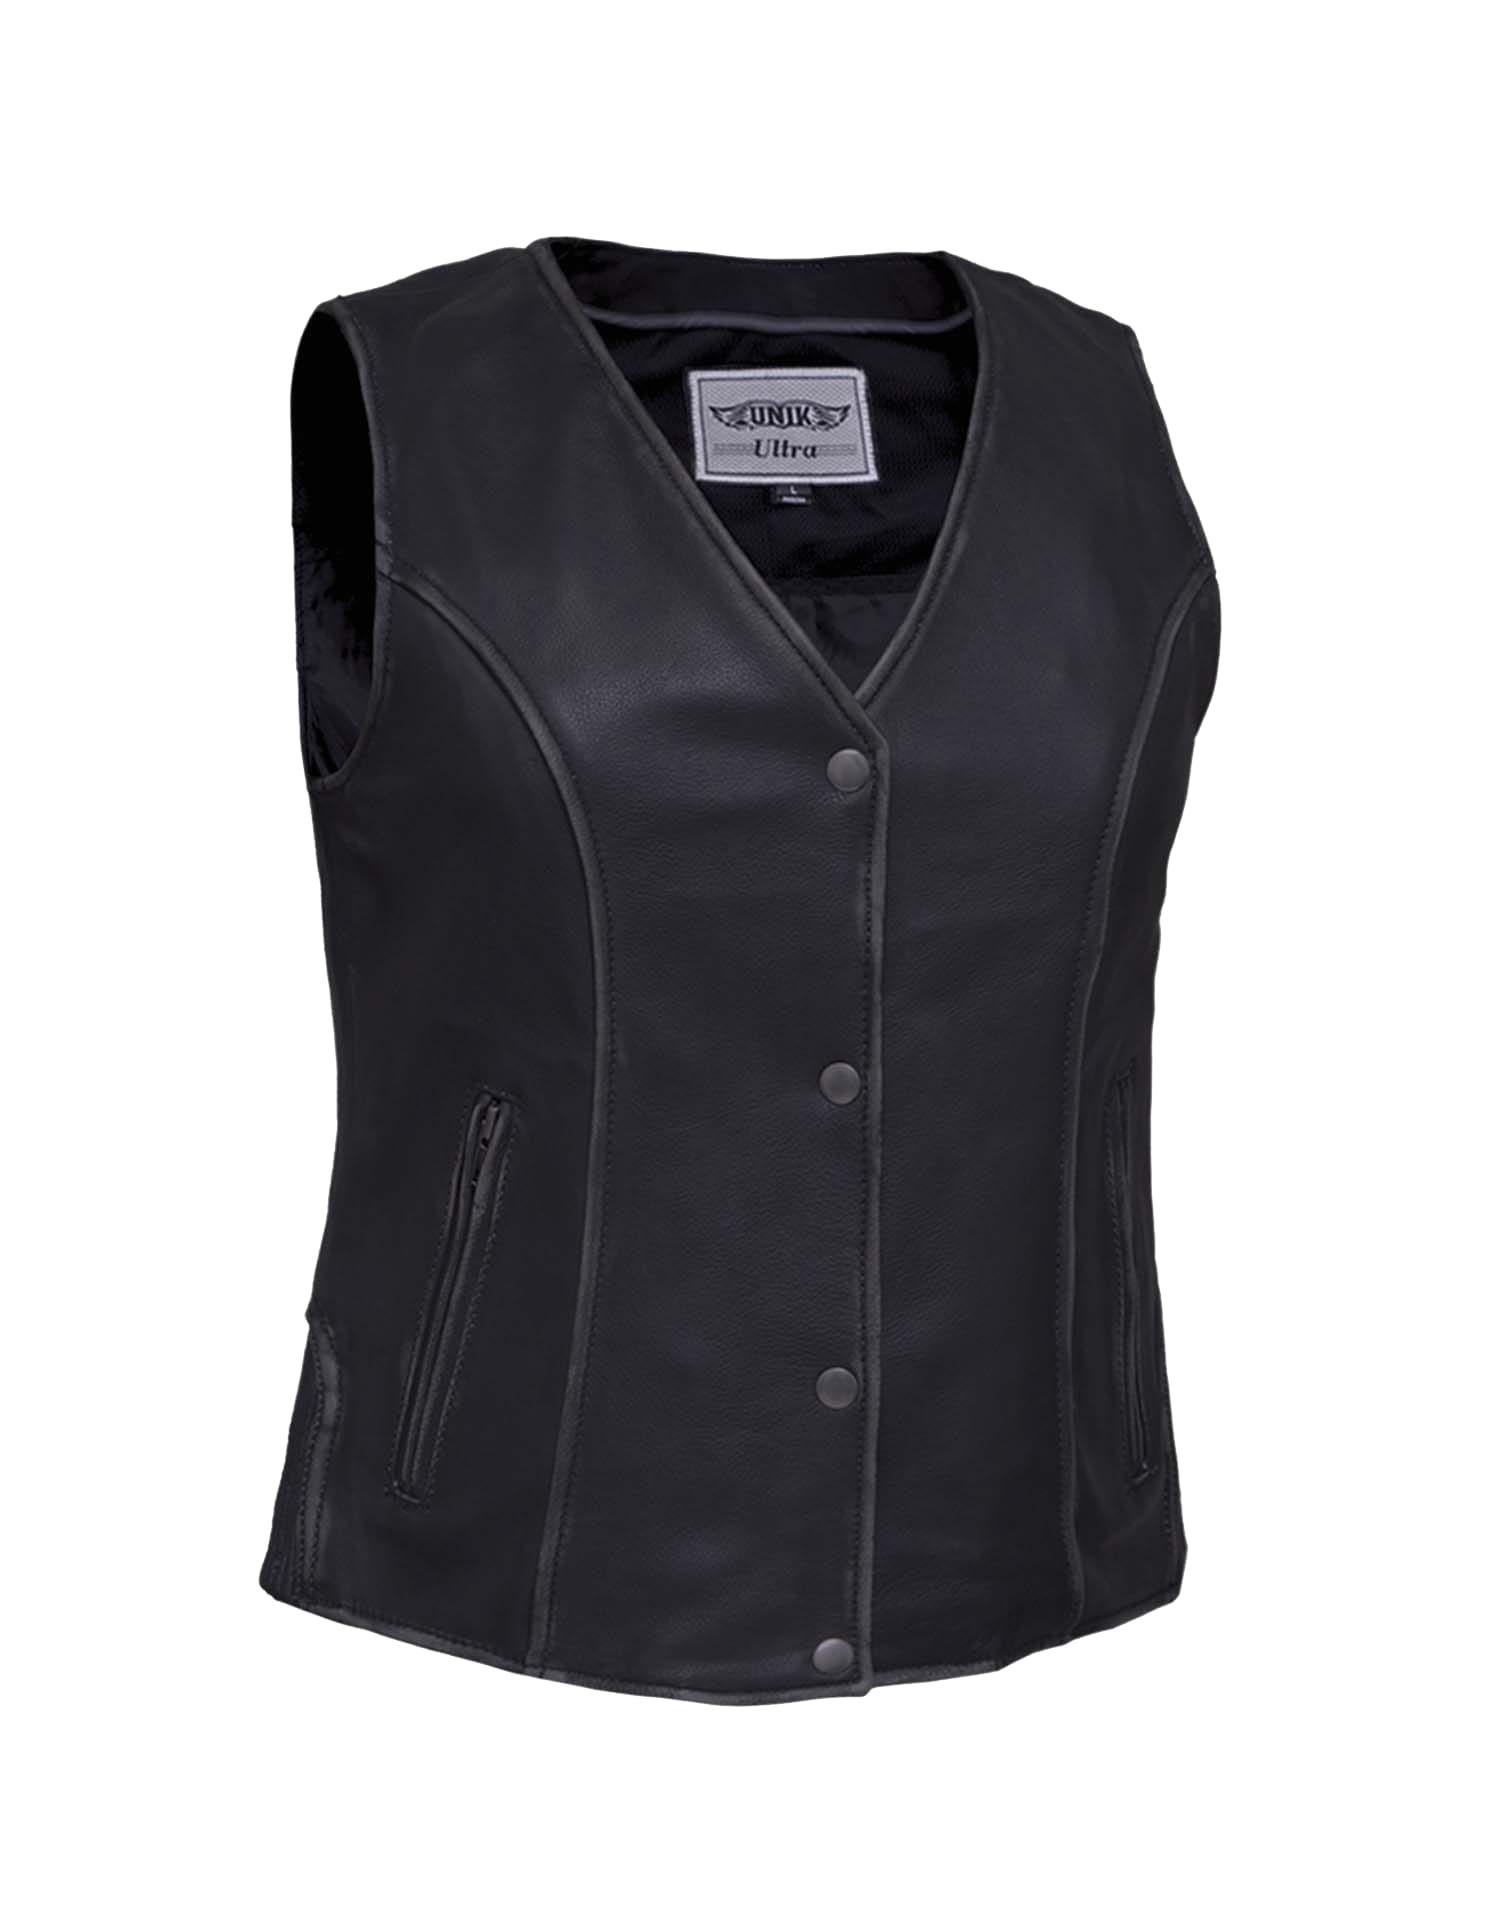 ff6f9fb1d582 Ladies Durango Gray Ultra Motorcycle Vest